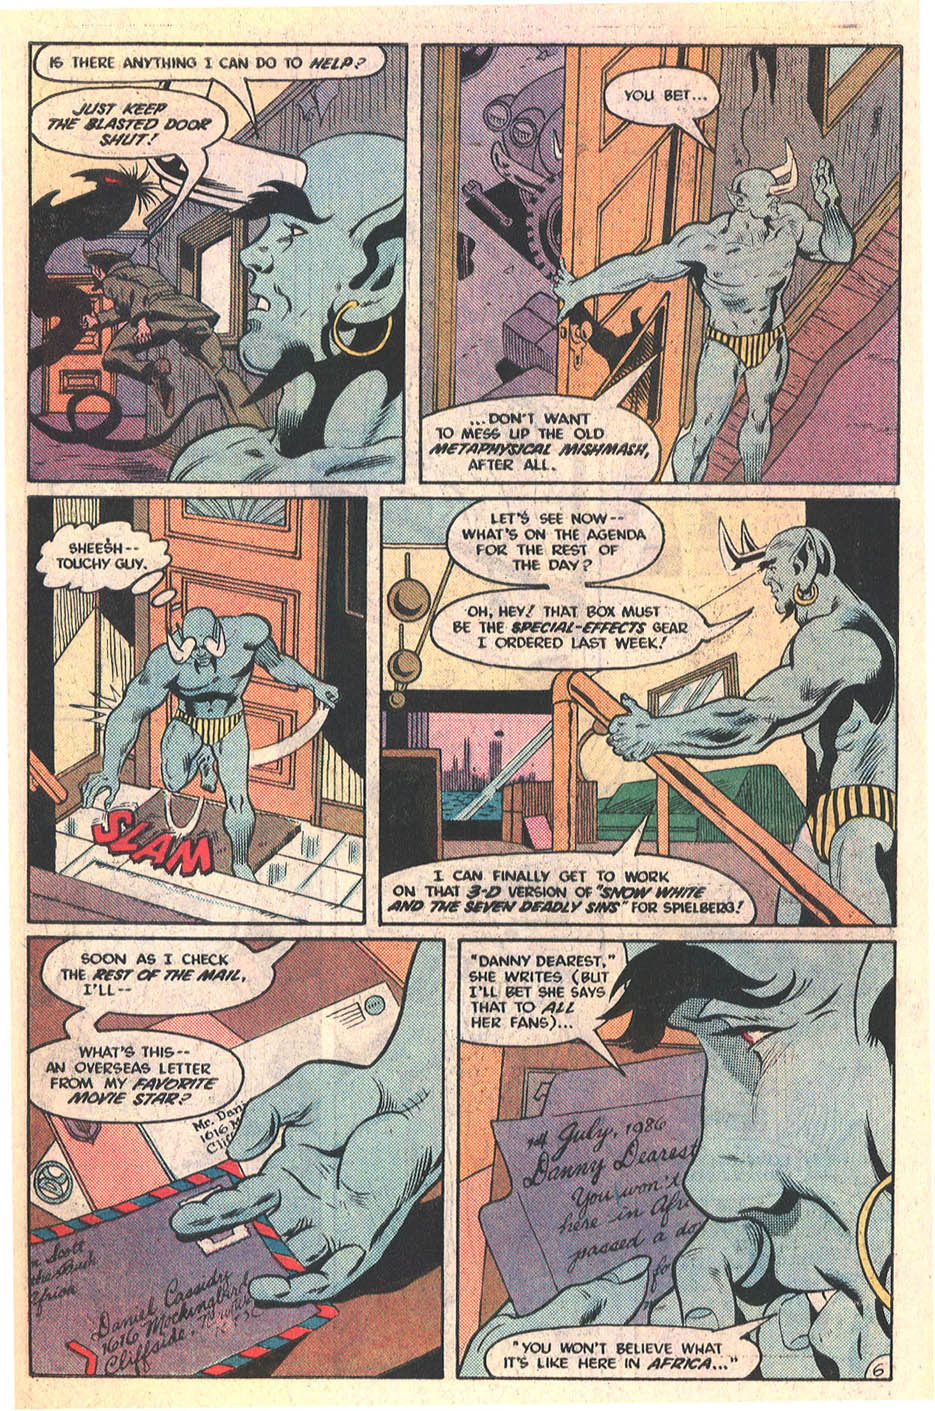 Blue Devil Issue 30 | Viewcomic reading comics online for